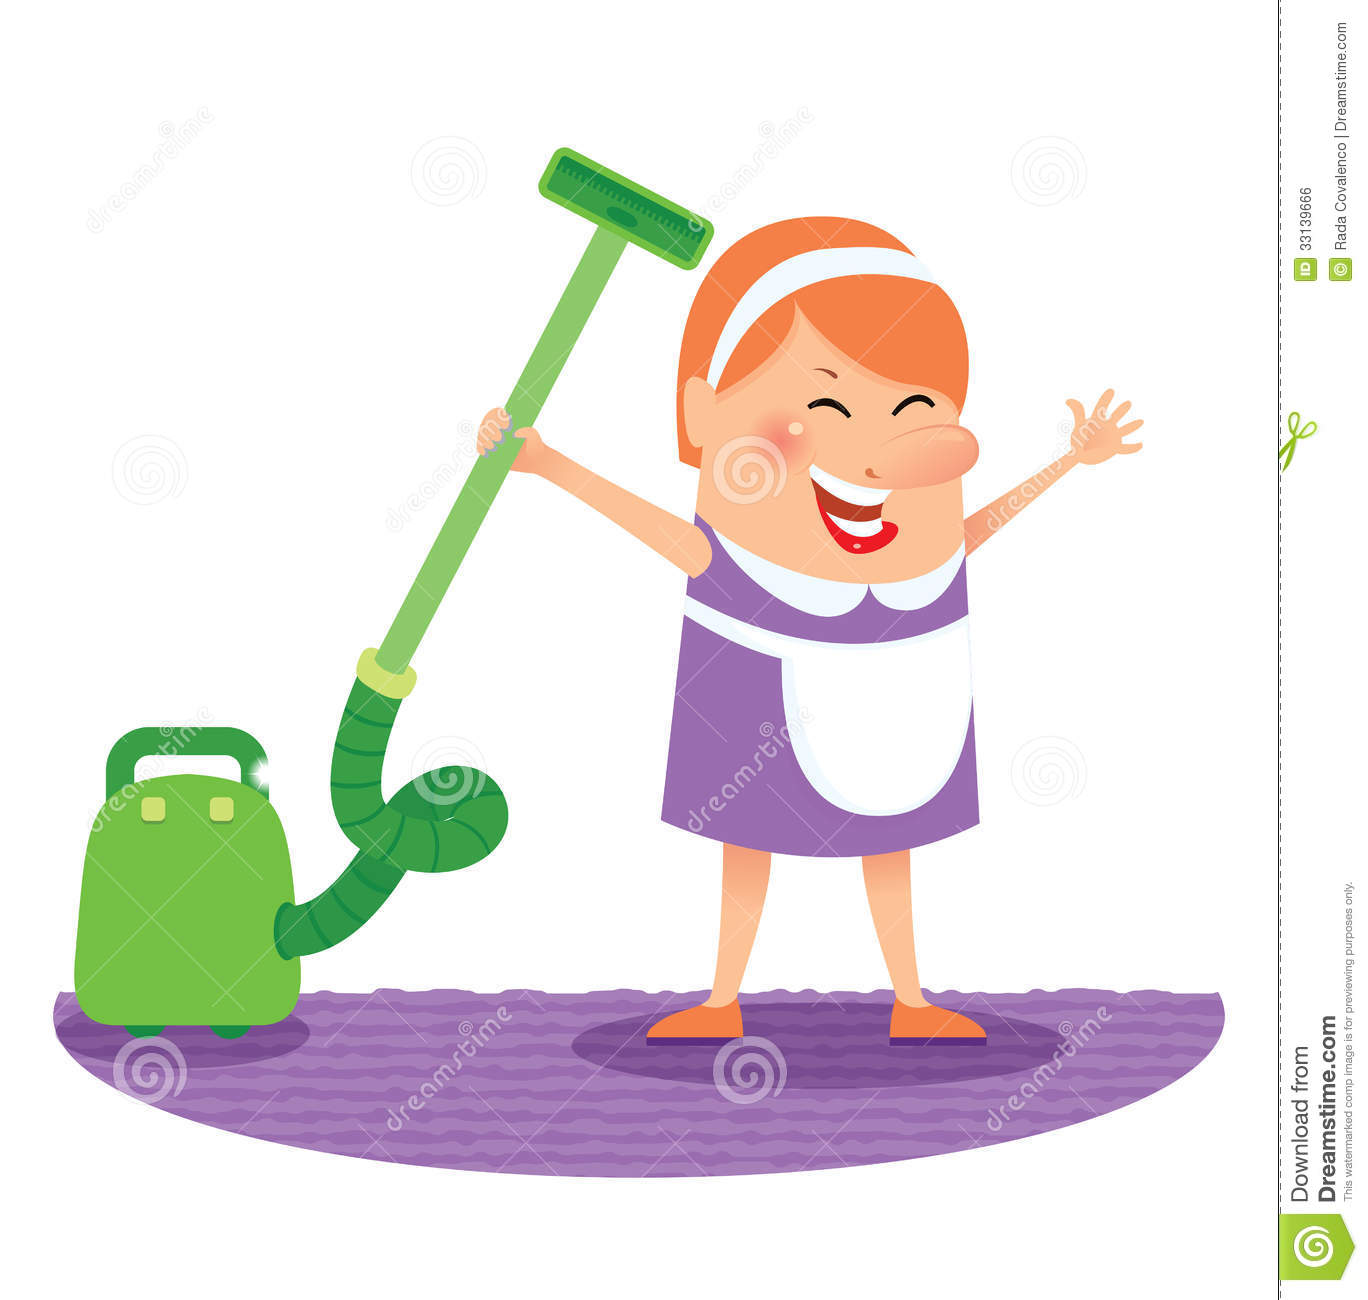 Cleaning Woman Royalty Free Stock Image - Image: 33139666